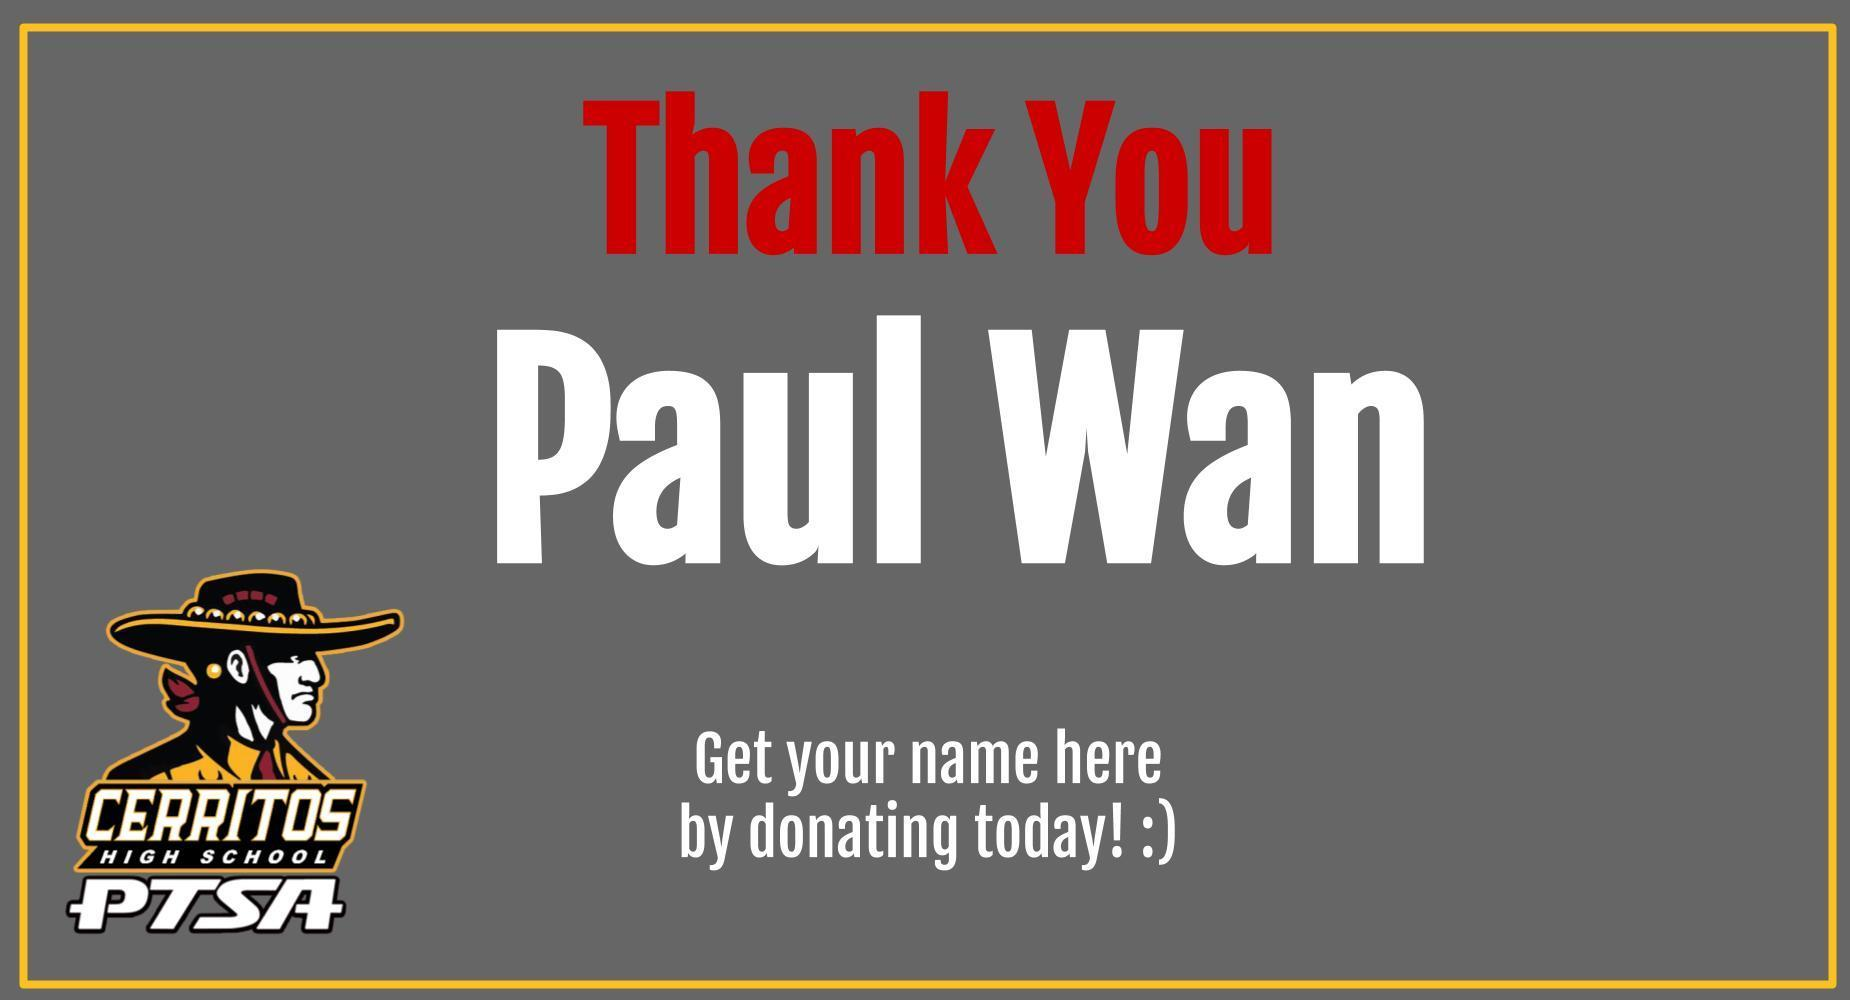 Thank you Paul Wan!